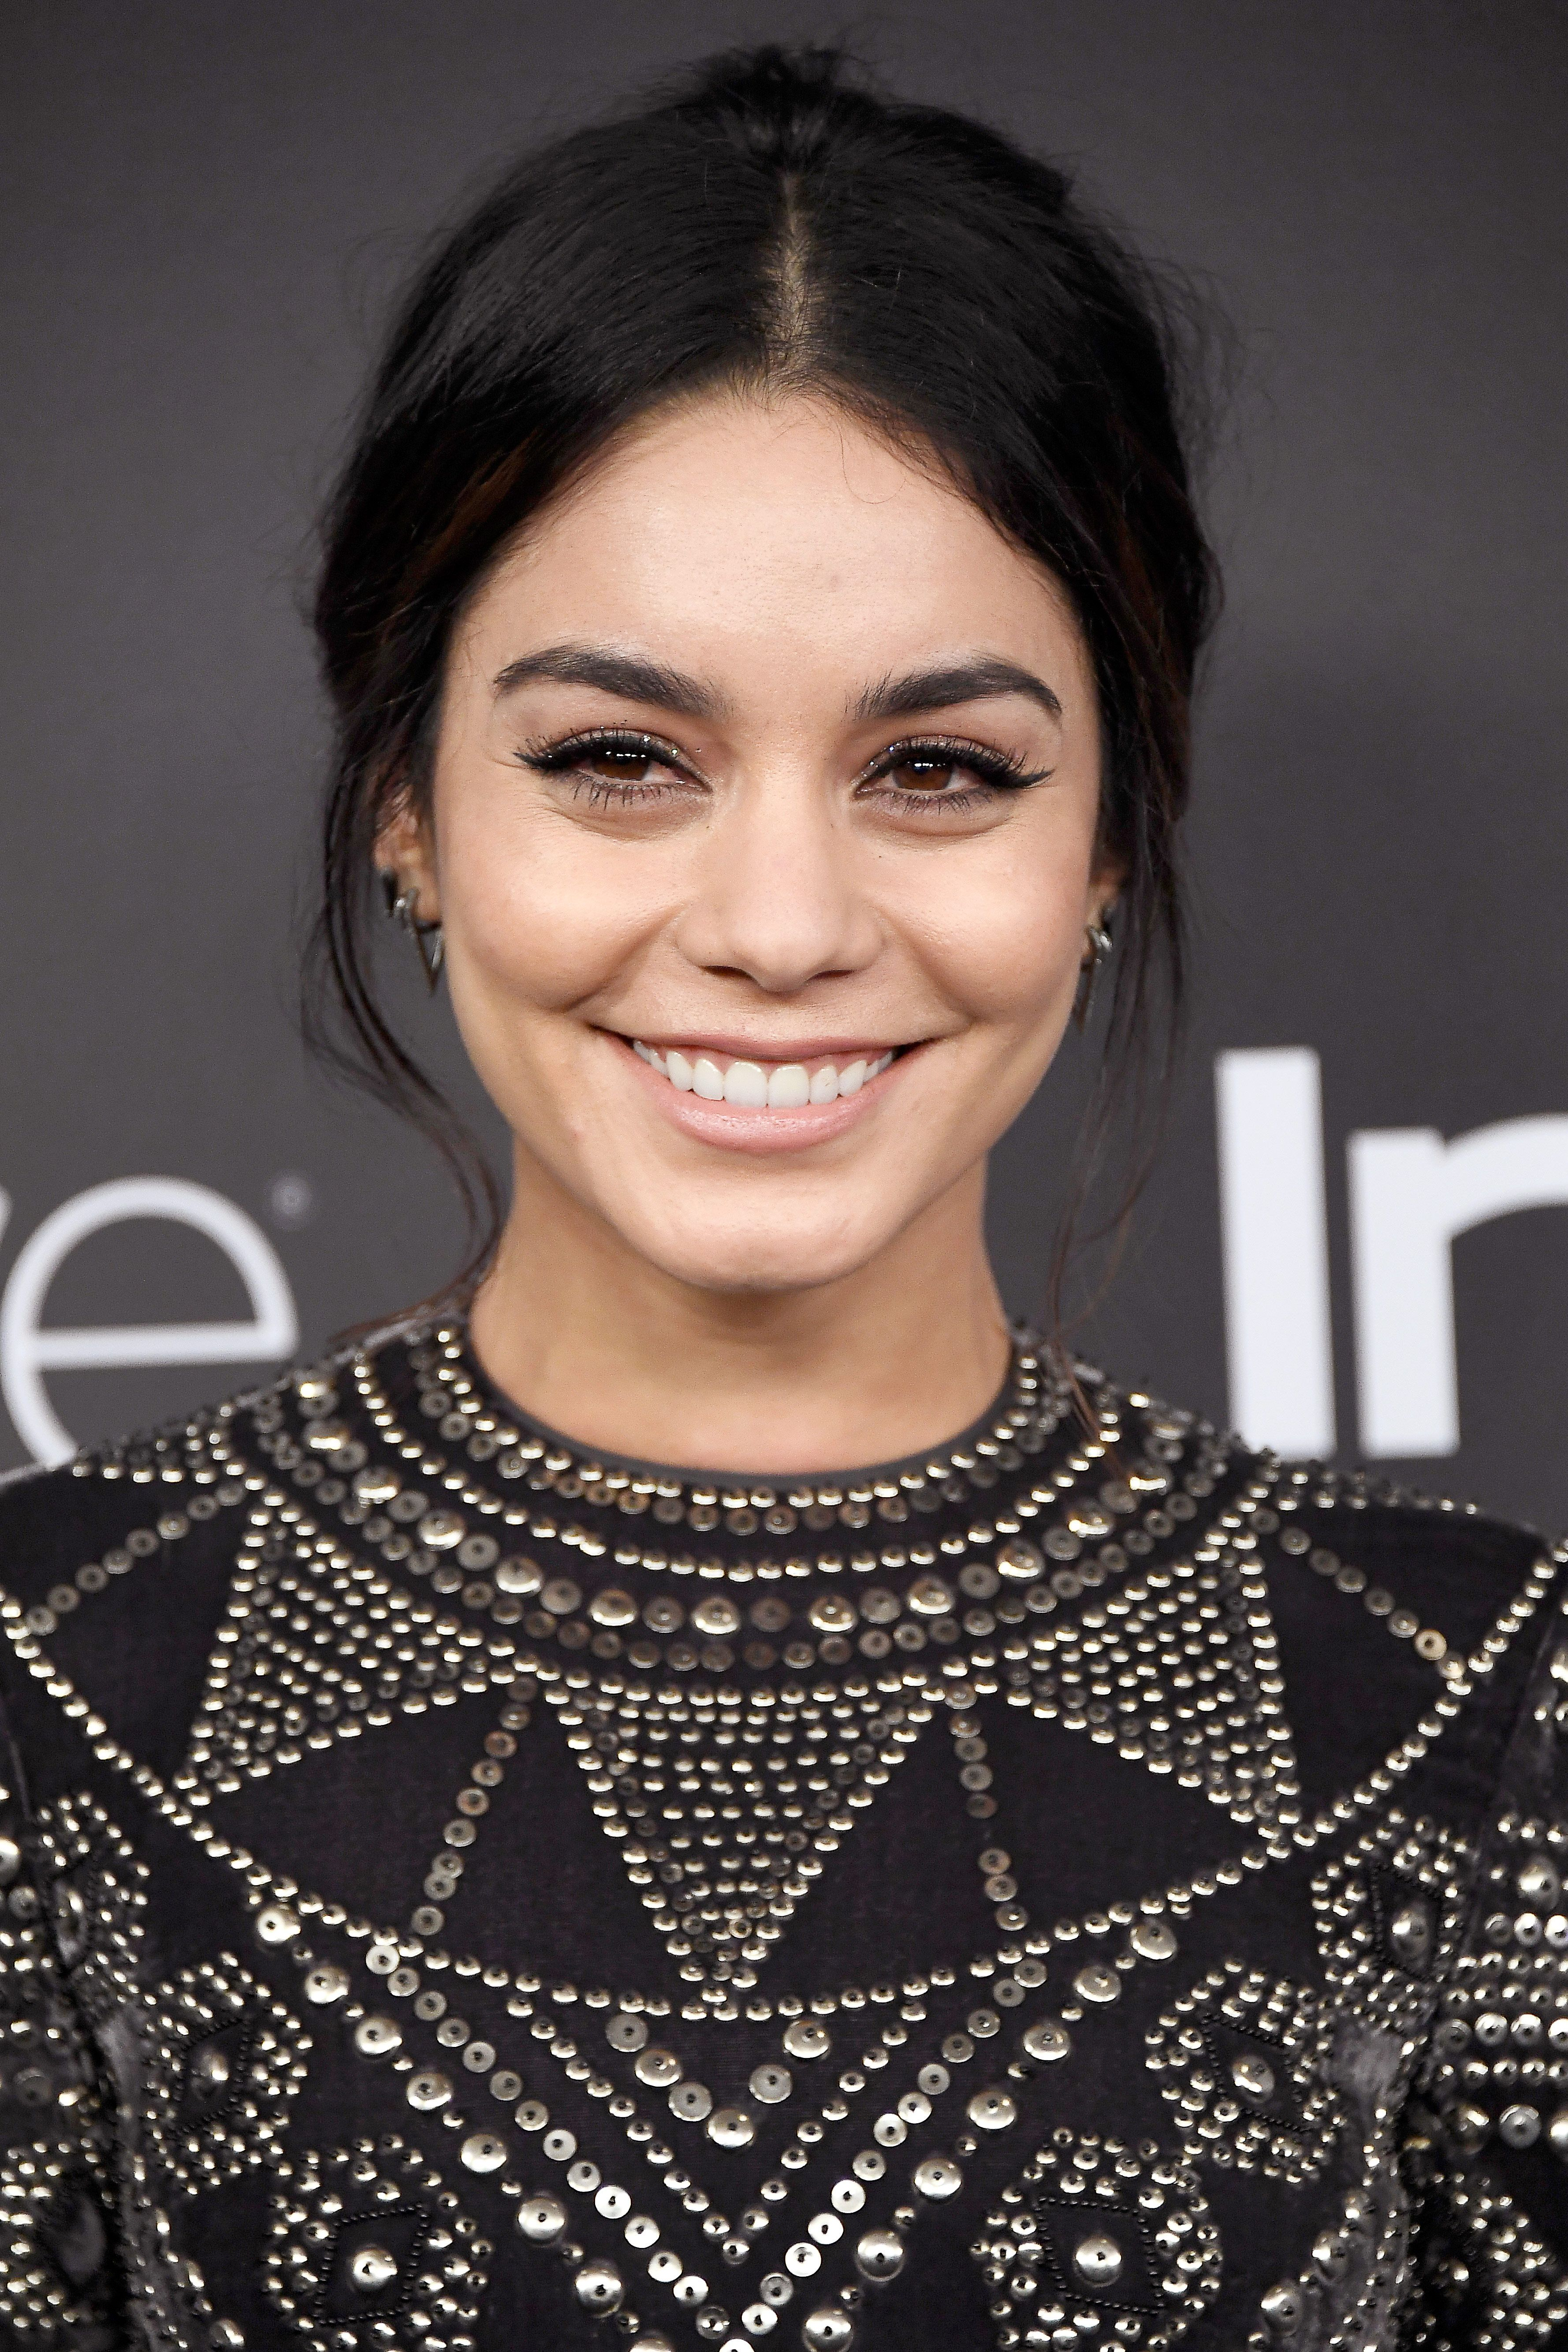 Pics Vanessa Hudgens naked (23 photos), Tits, Hot, Feet, swimsuit 2019